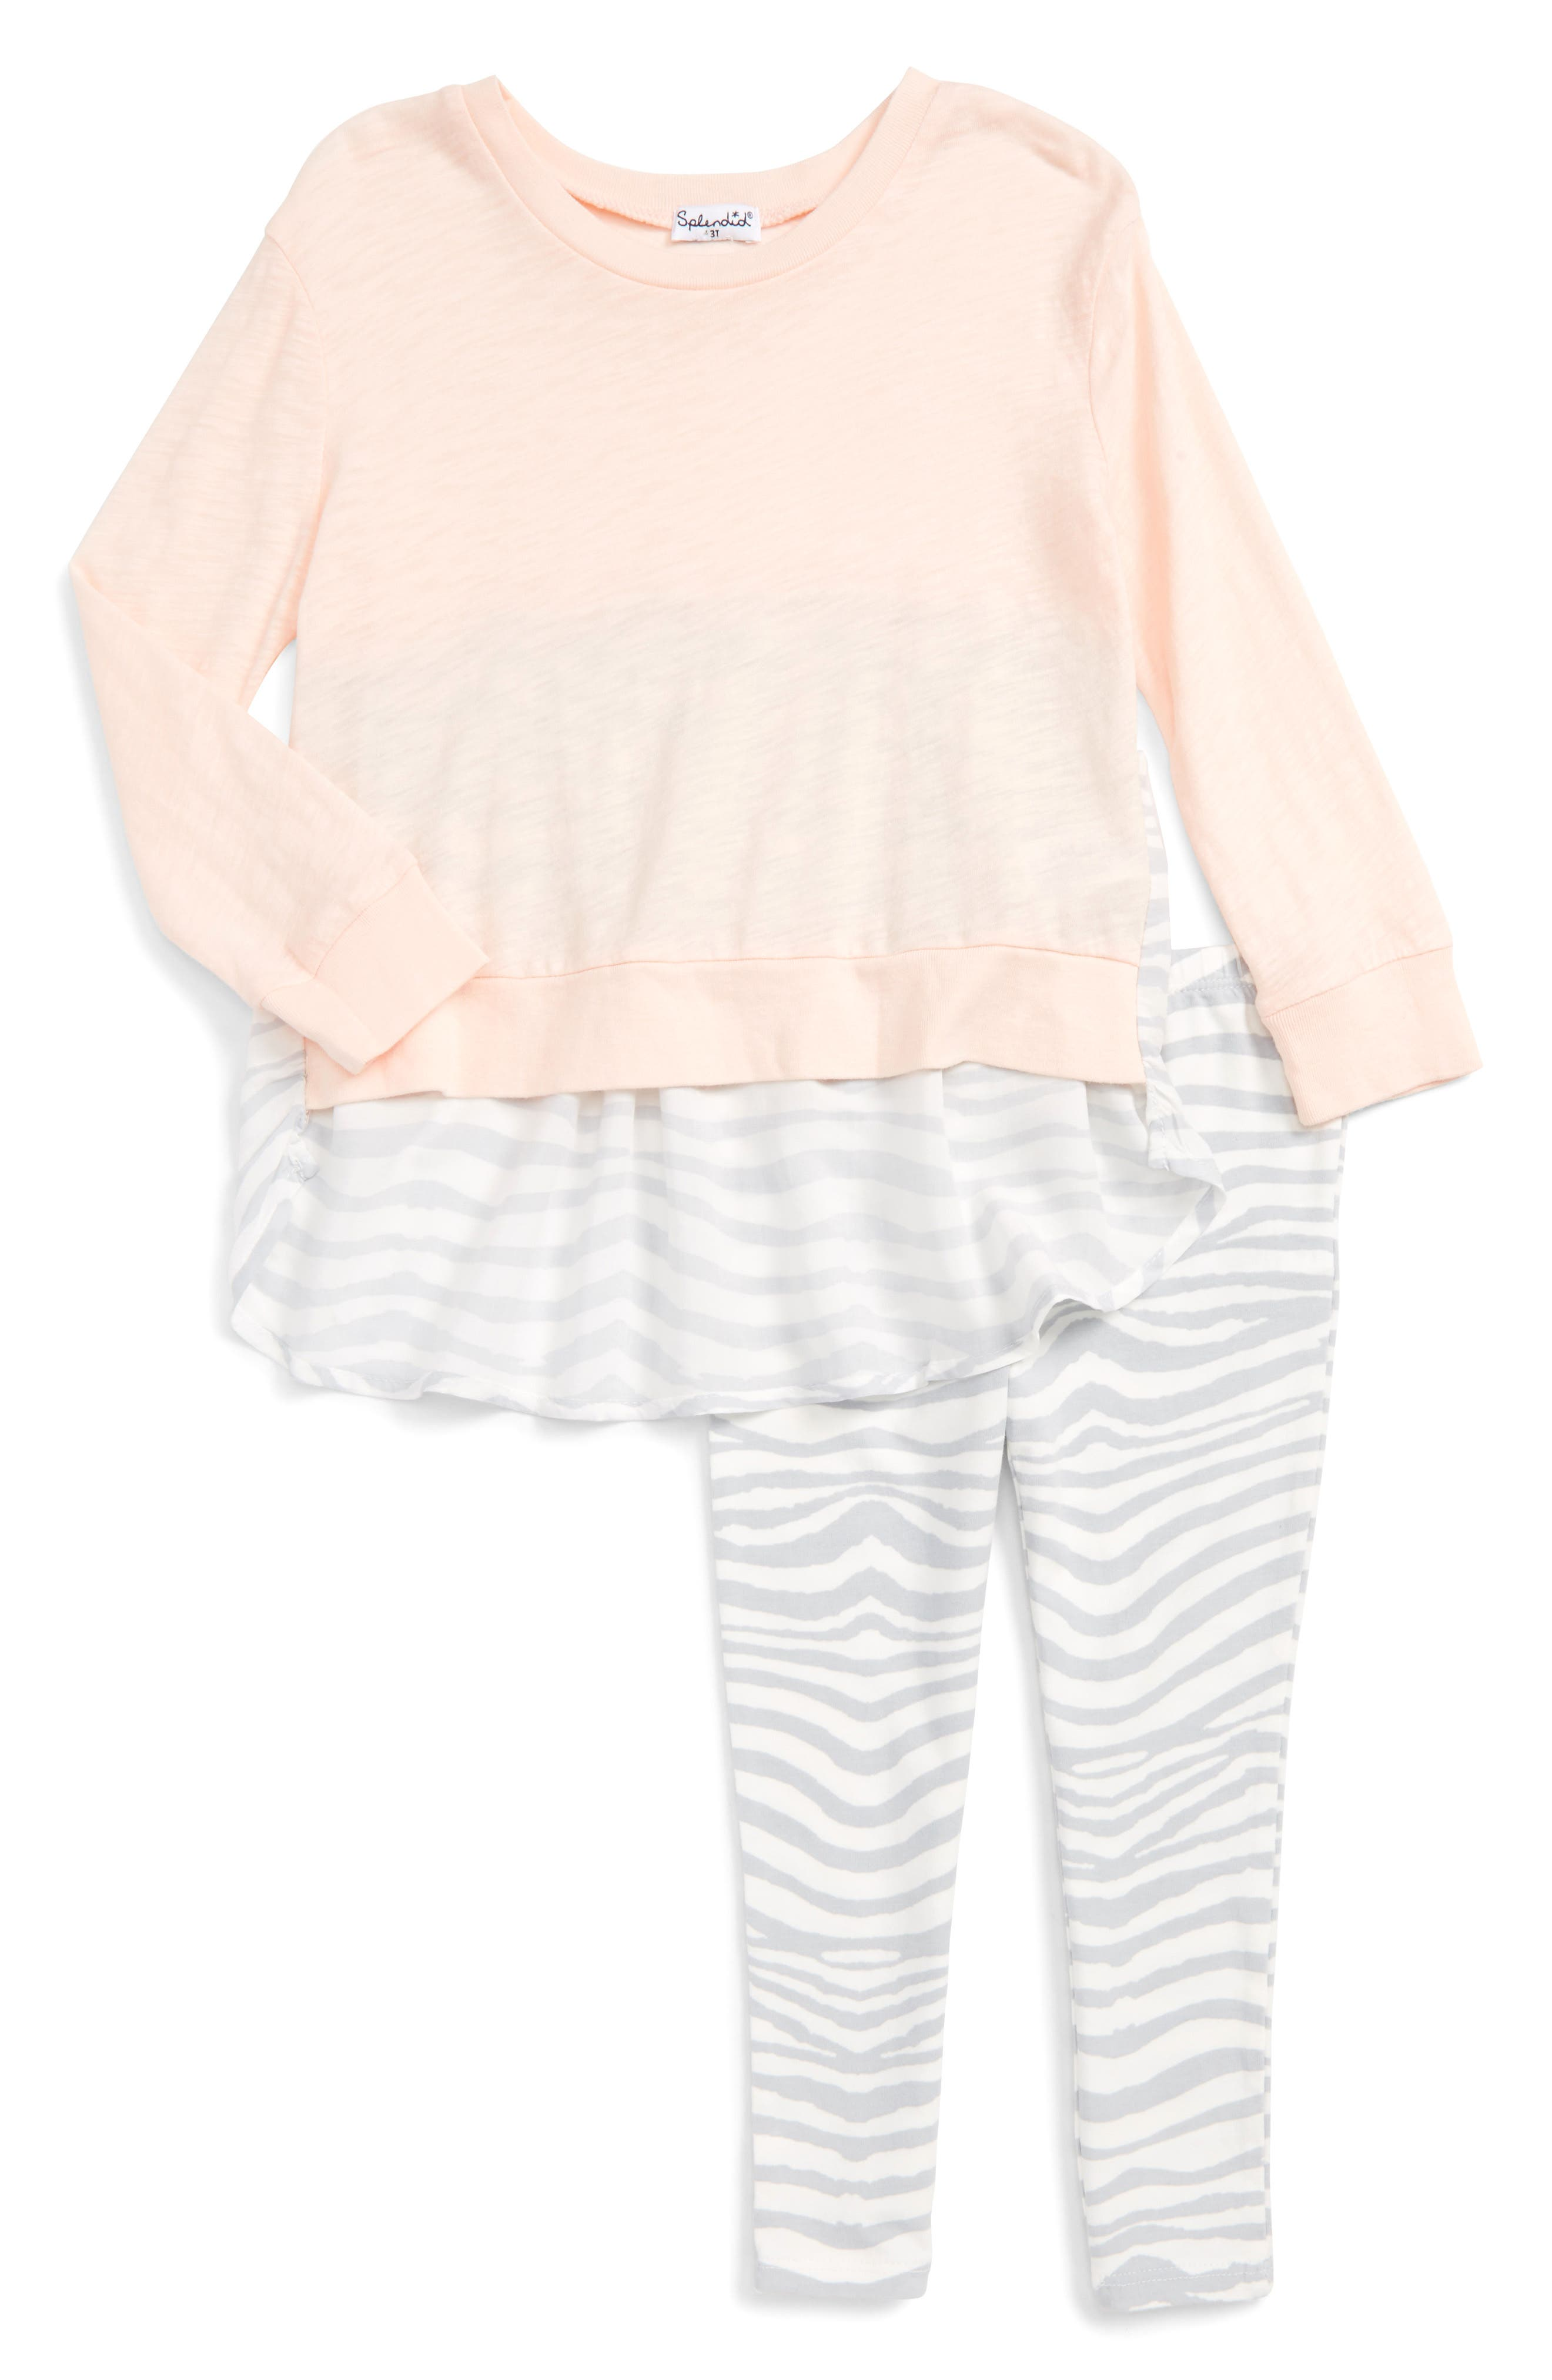 Splendid Tee & Zebra Print Leggings Set (Baby Girls)